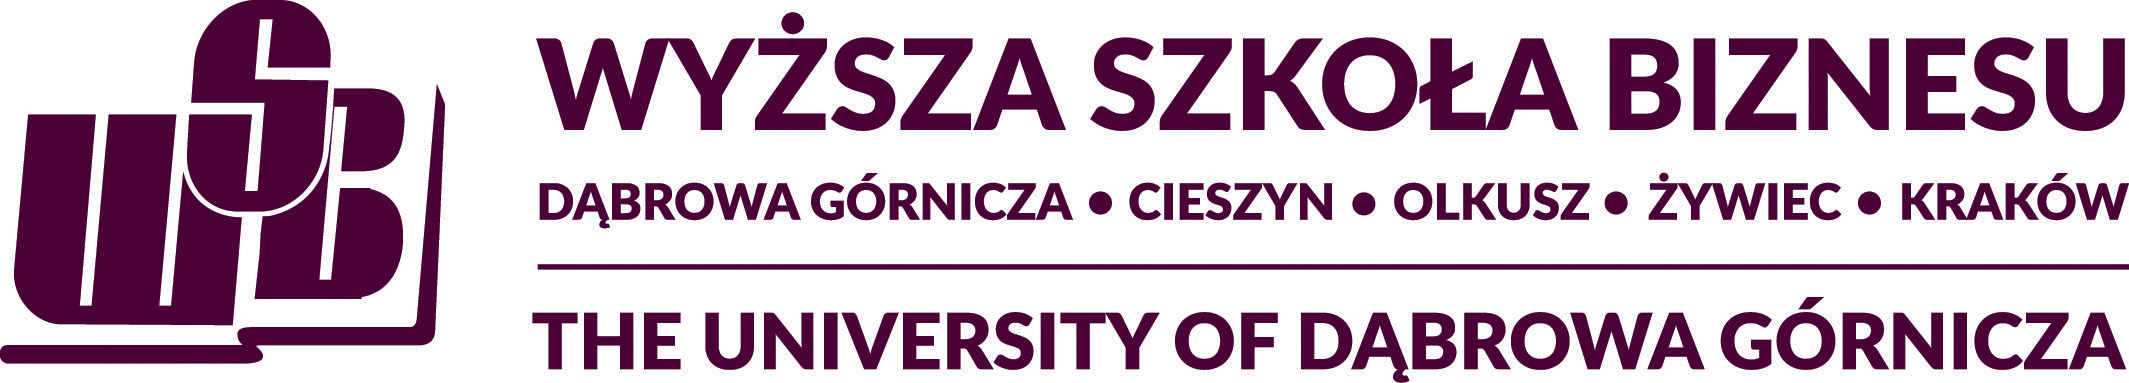 UNIVERSITY OF DABROWA GORNICZA, FACULTY OF APPLIED SCIENCES, POLAND